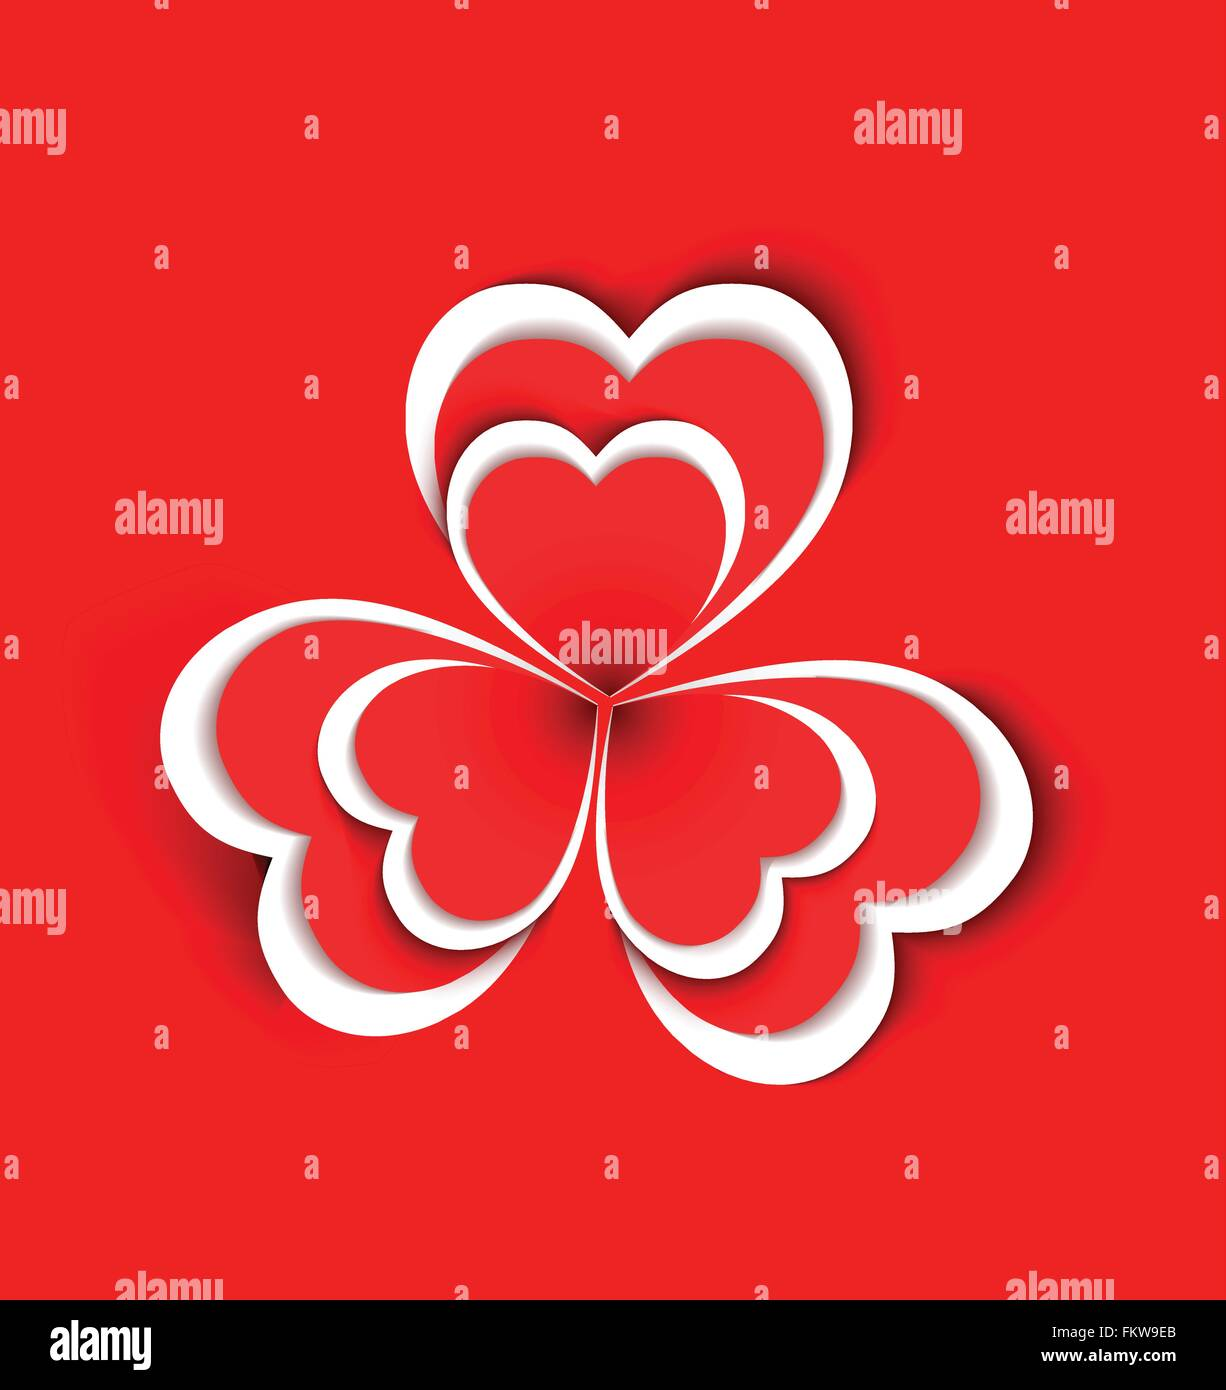 Conceptual flower shape made from paper hearts shape on red background Stock Vector